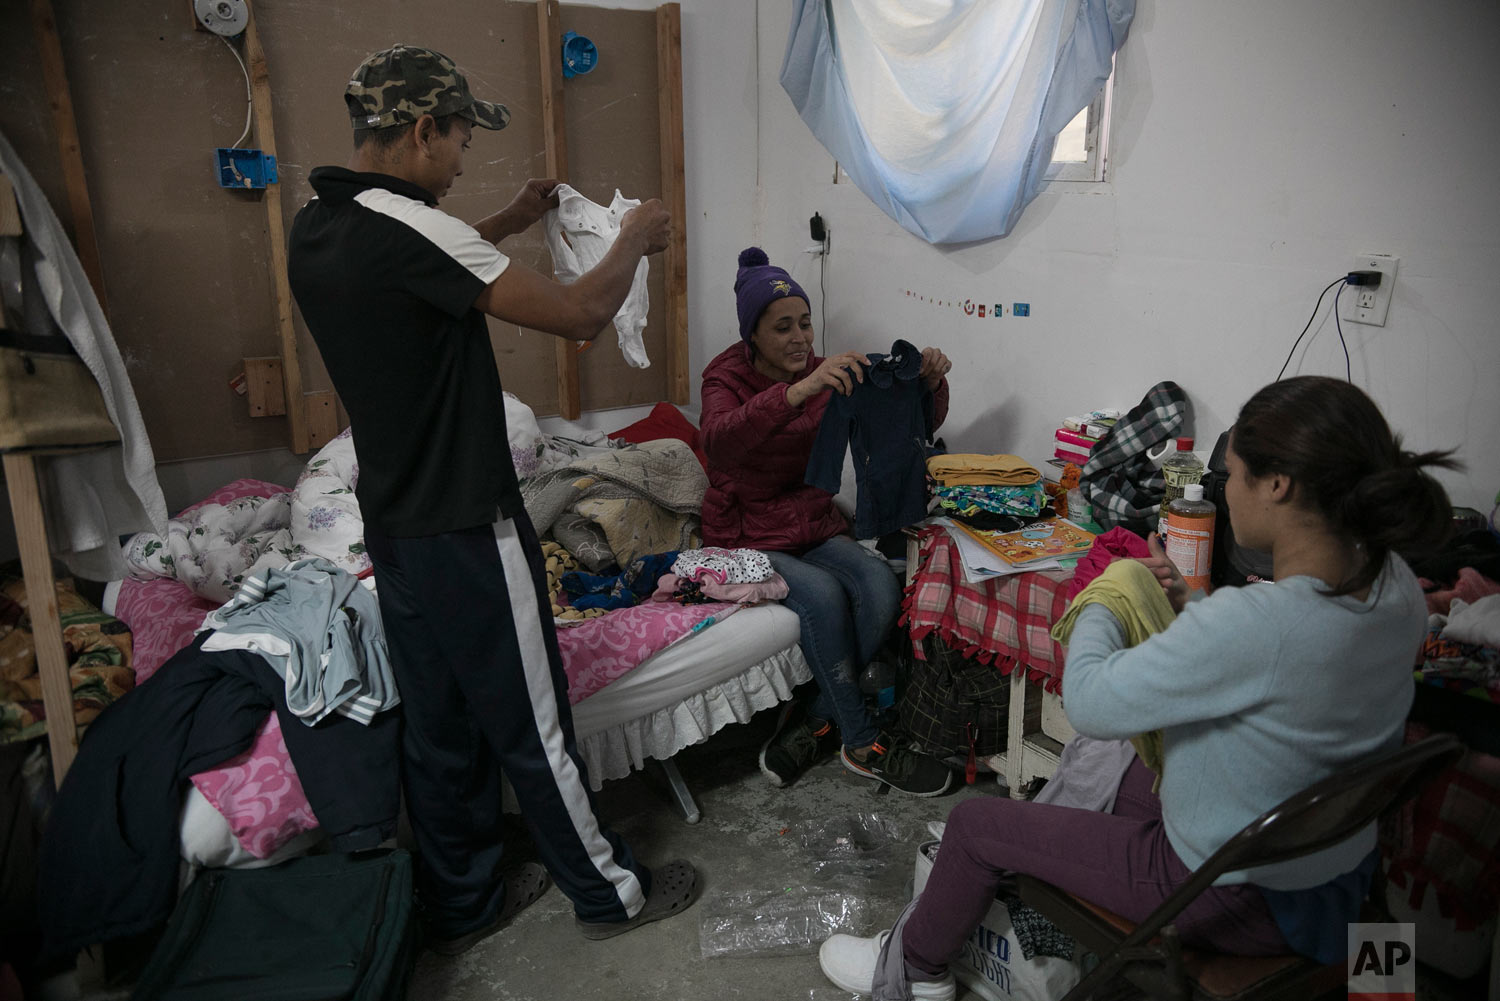 Central American migrants, 17-year-old Josue Mejia Lucero, left, 15-year-old Milagro de Jesus Henriquez Ayala, who is pregnant, center, and her younger sister Xiomara,13, organize baby clothes they selected from among donated items, in their room at the Agape World Mission shelter in Tijuana, Mexico, Feb. 6, 2019. (AP Photo/Emilio Espejel)